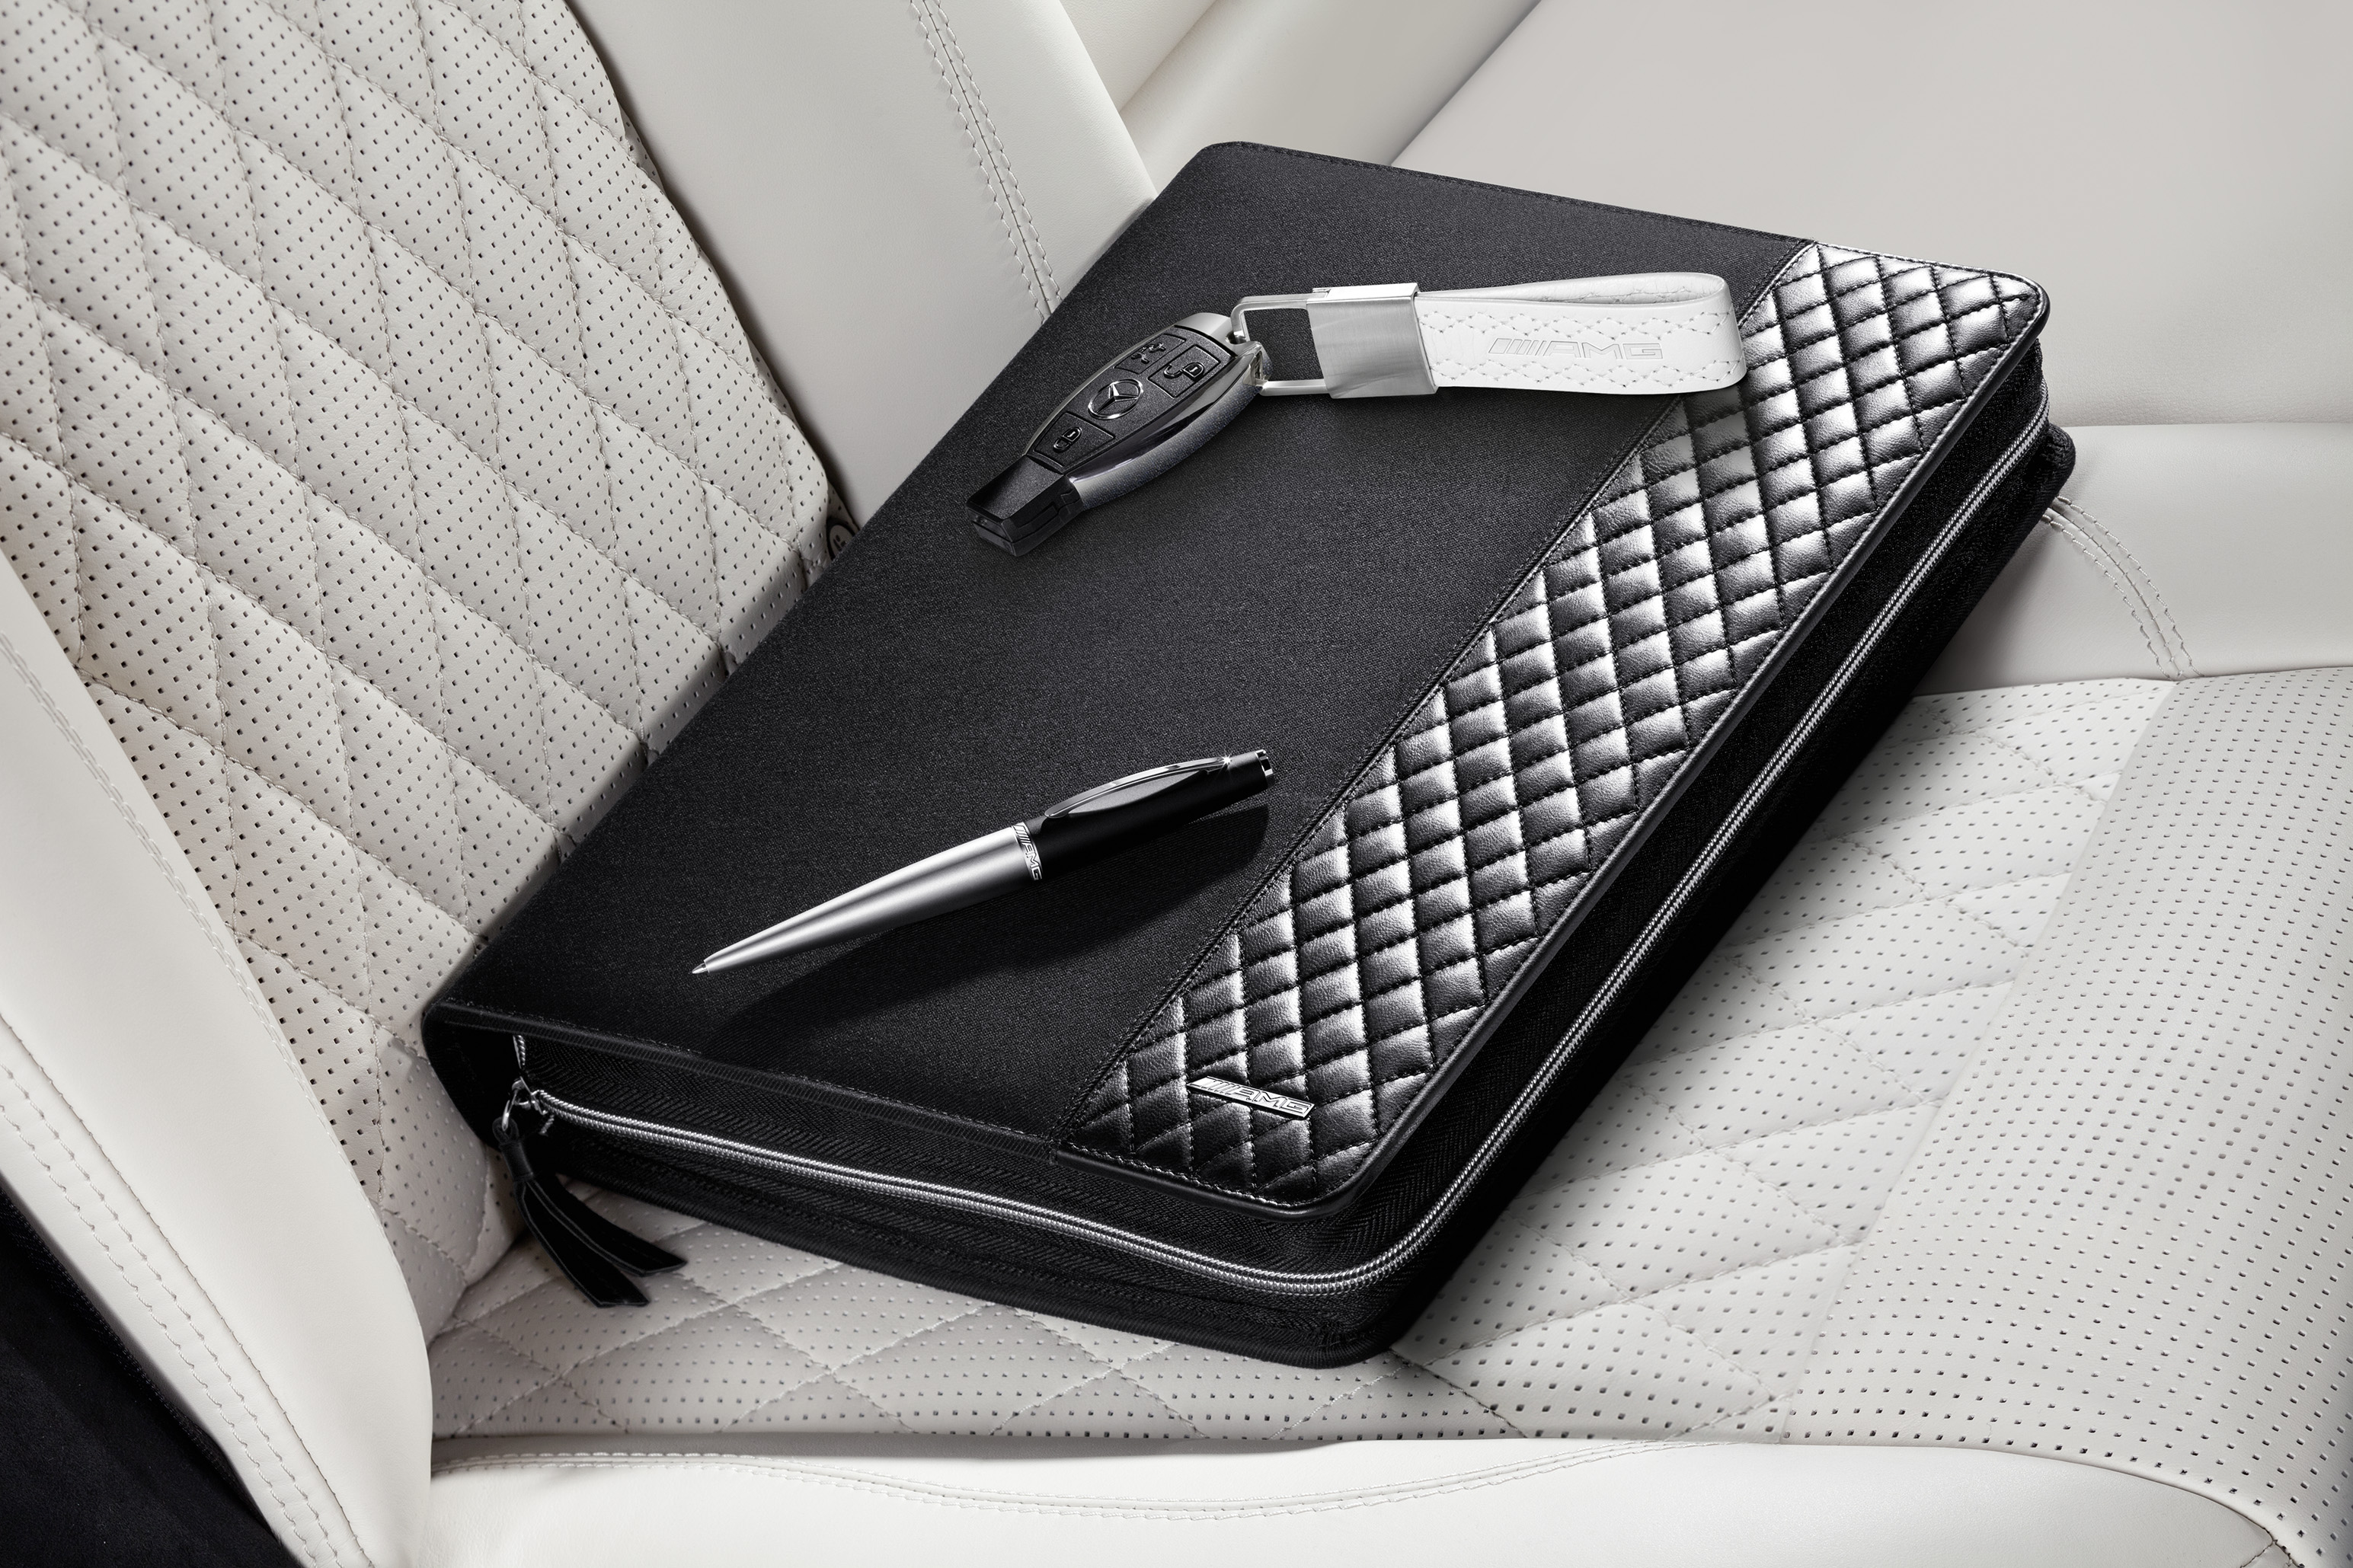 Mercedes Amg Fan Get Accessories With High Tech Qualities